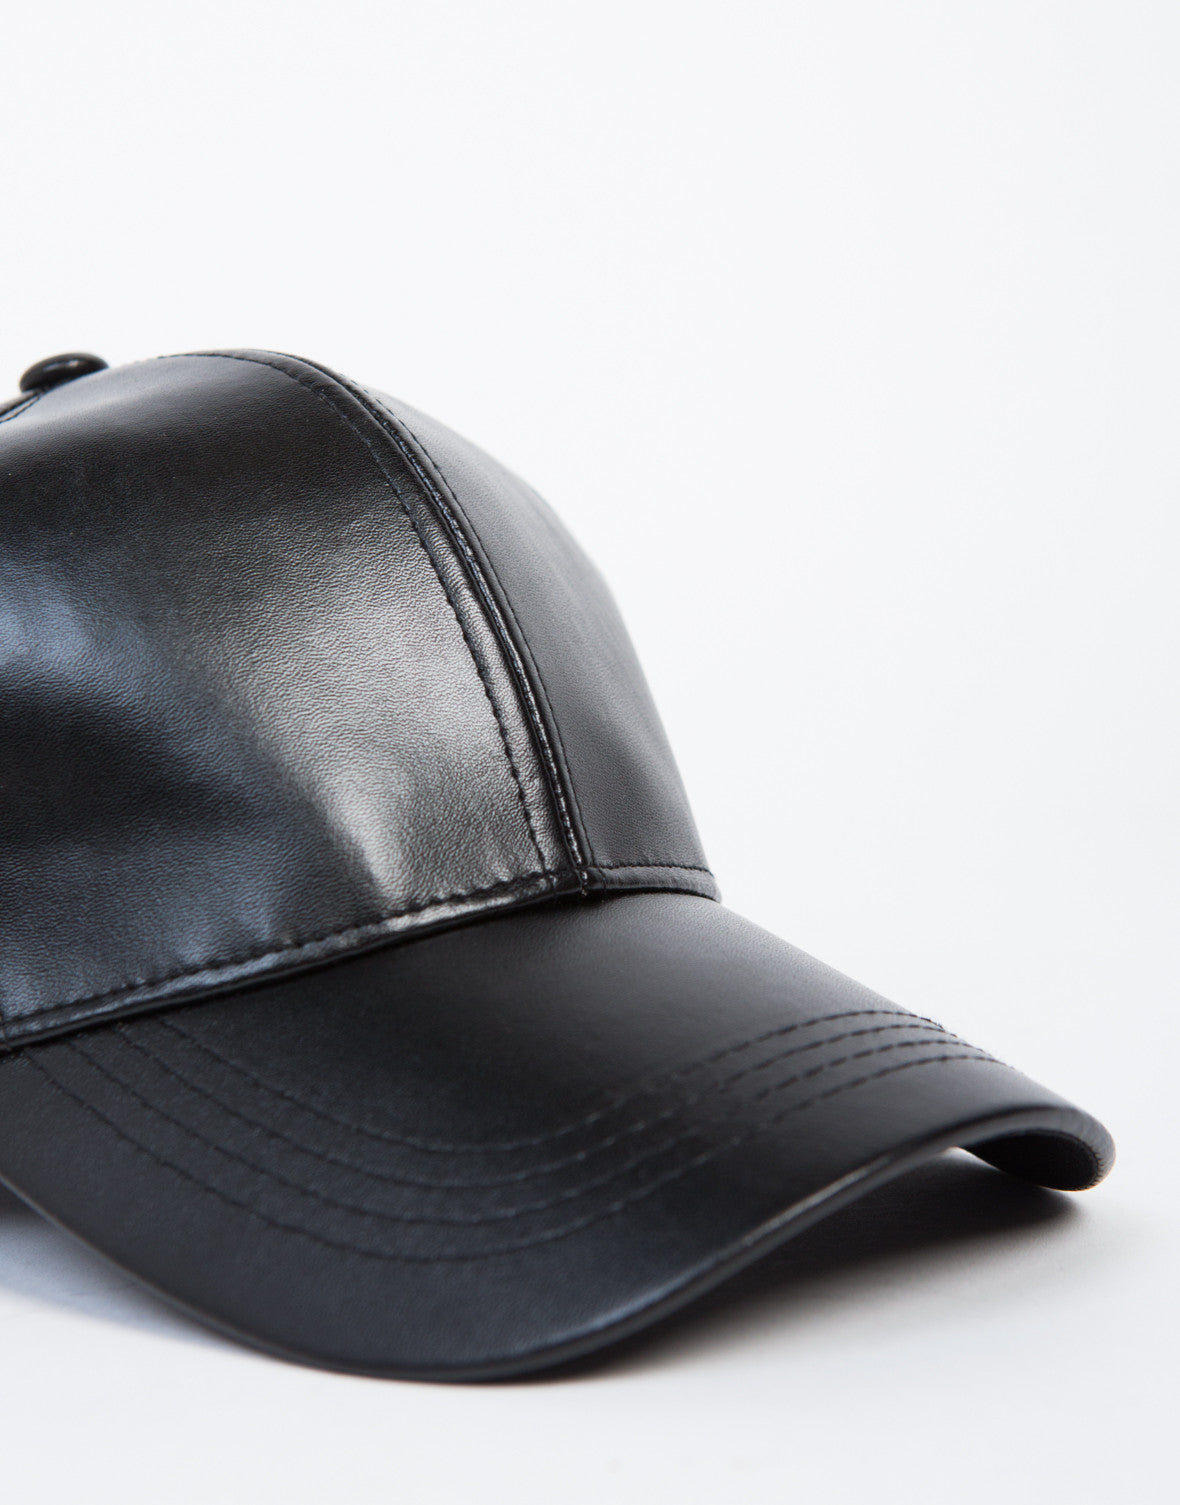 City Leather Baseball Cap